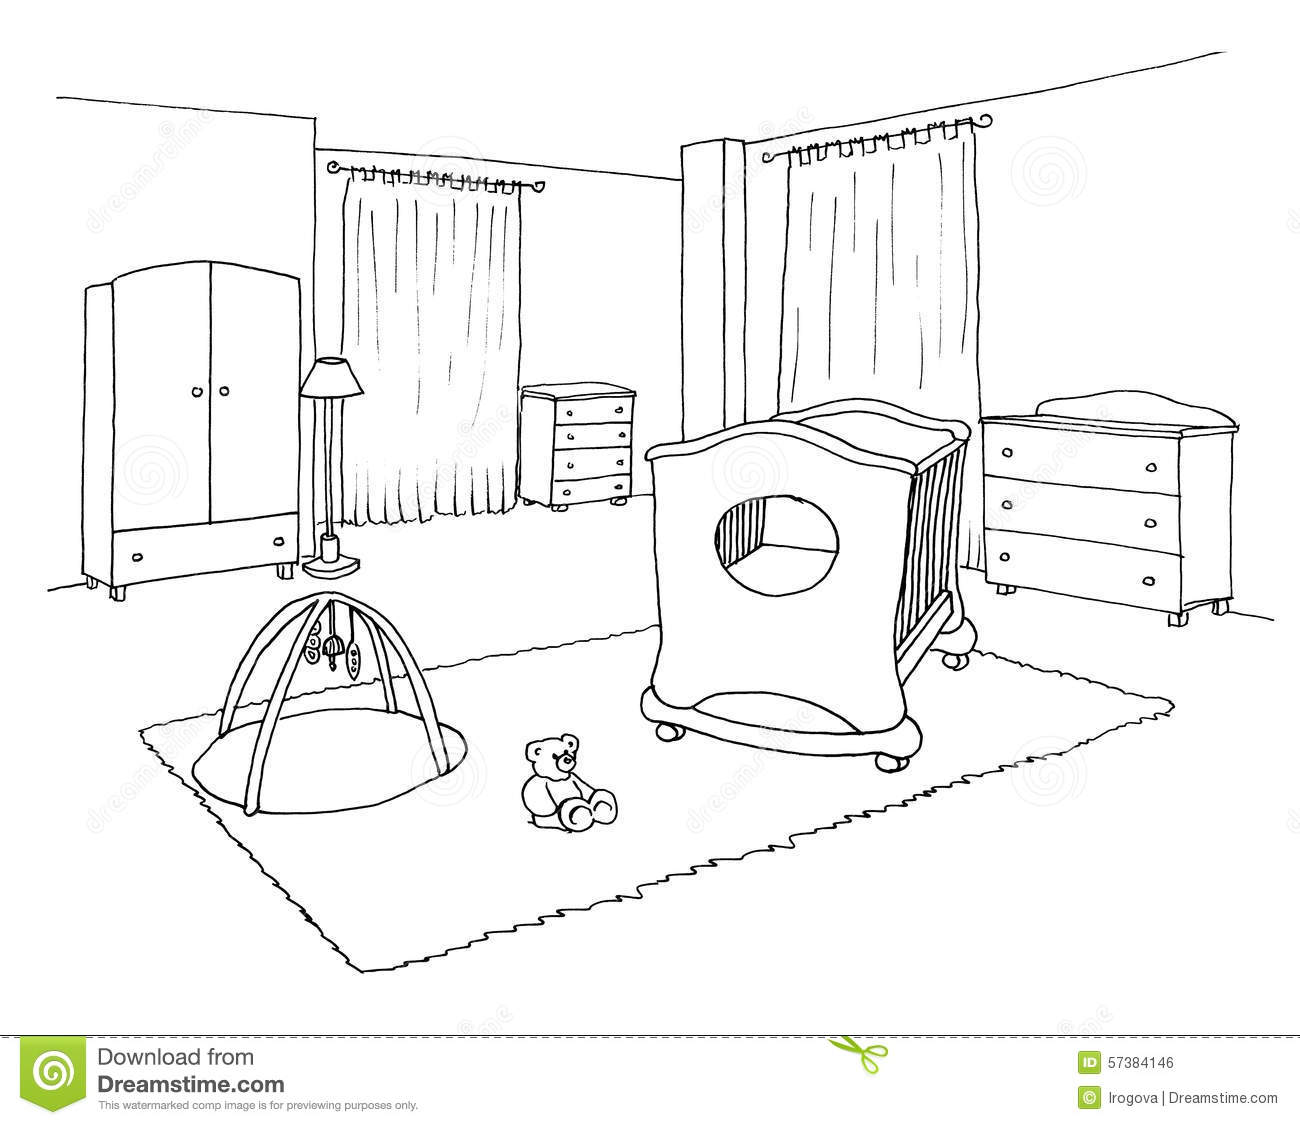 bedroom clipart black and white. kids bedroom drawing messy room clipart black and white design